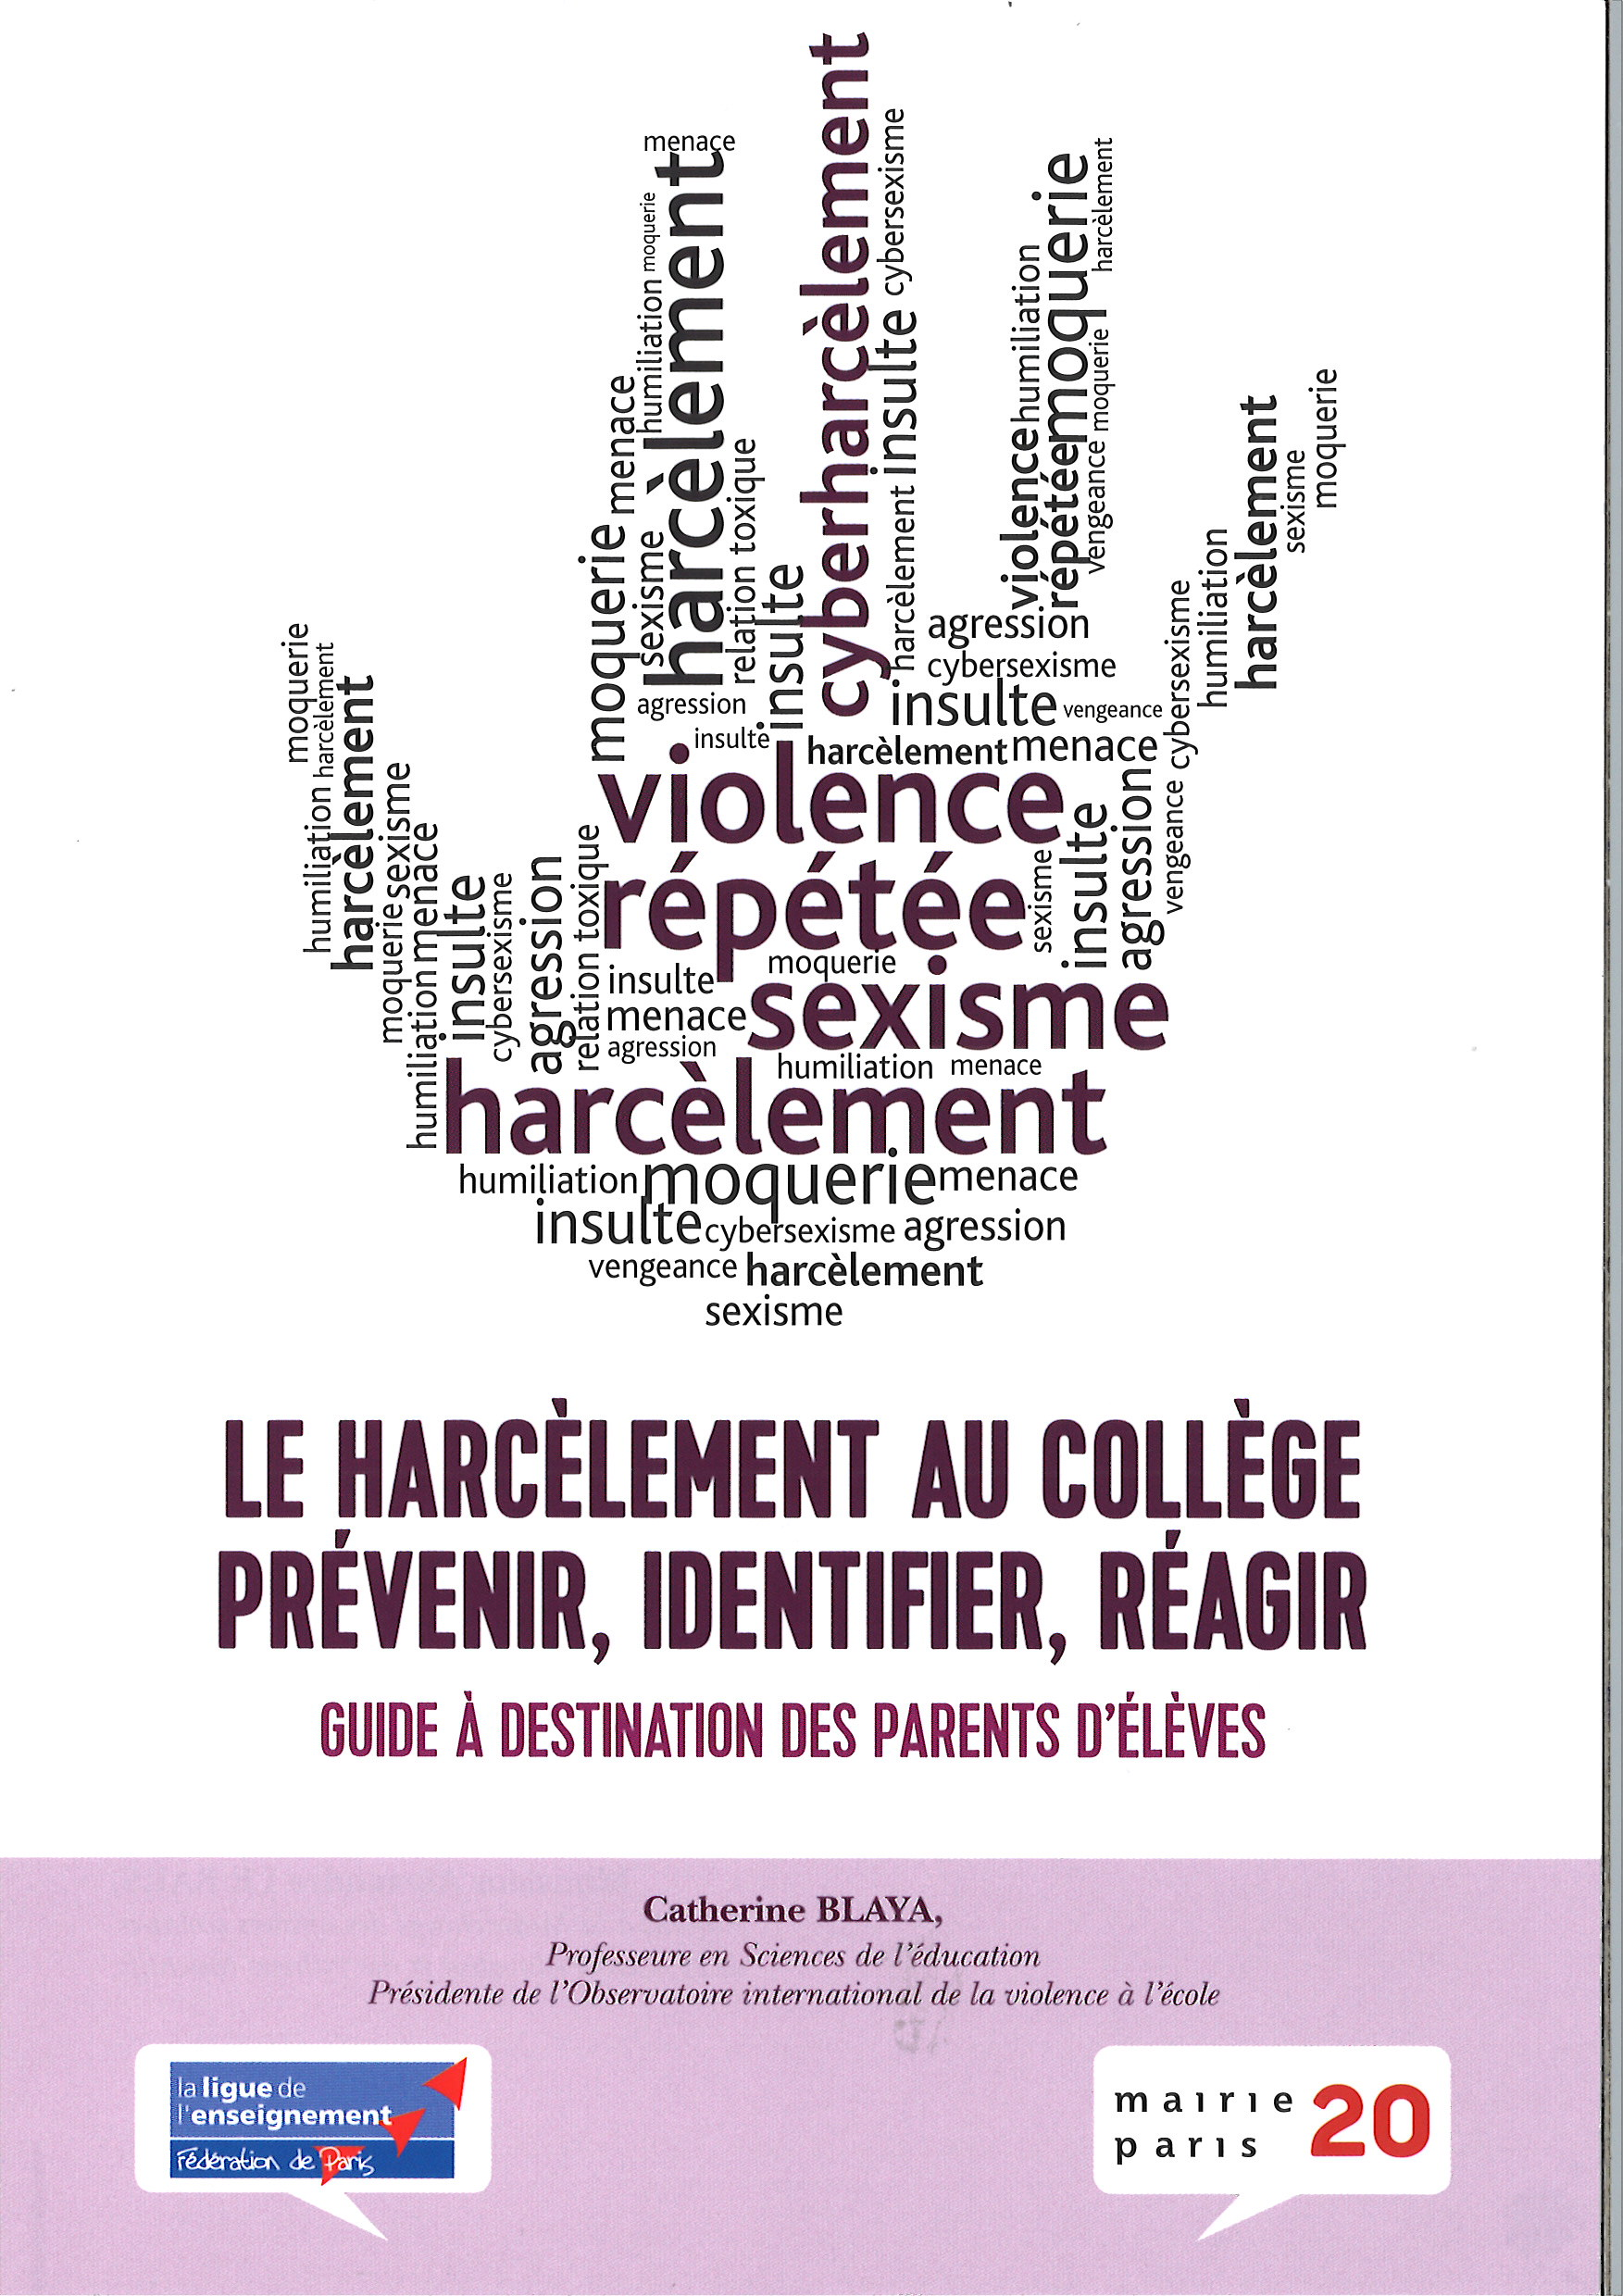 harcelement-college